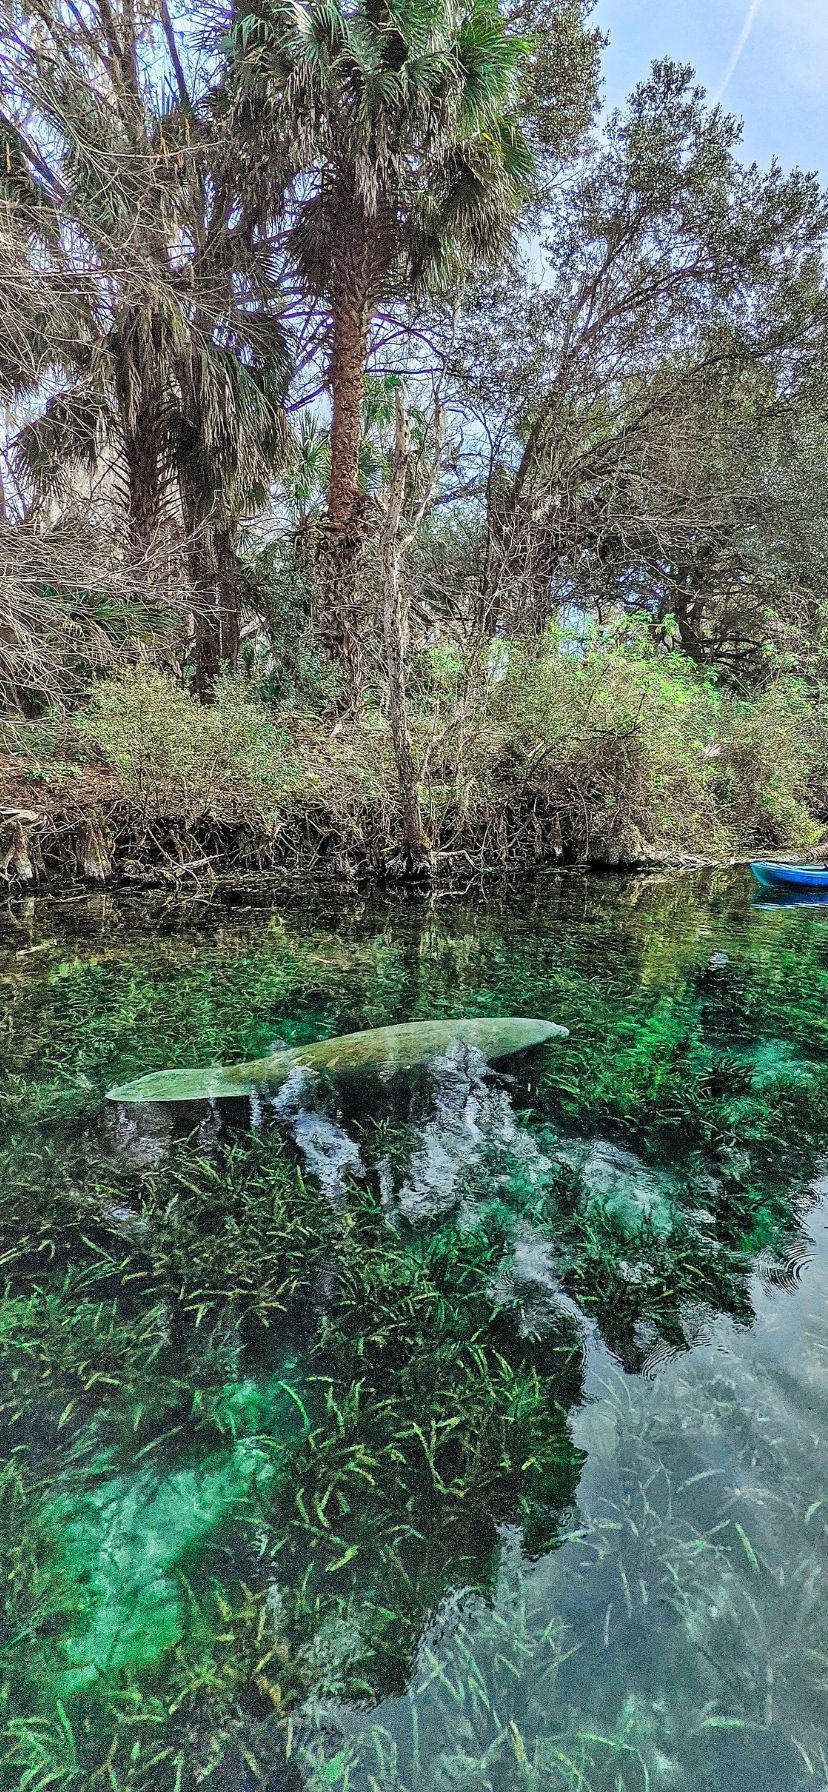 Best Florida Springs for Manatees at Silver Springs State Park